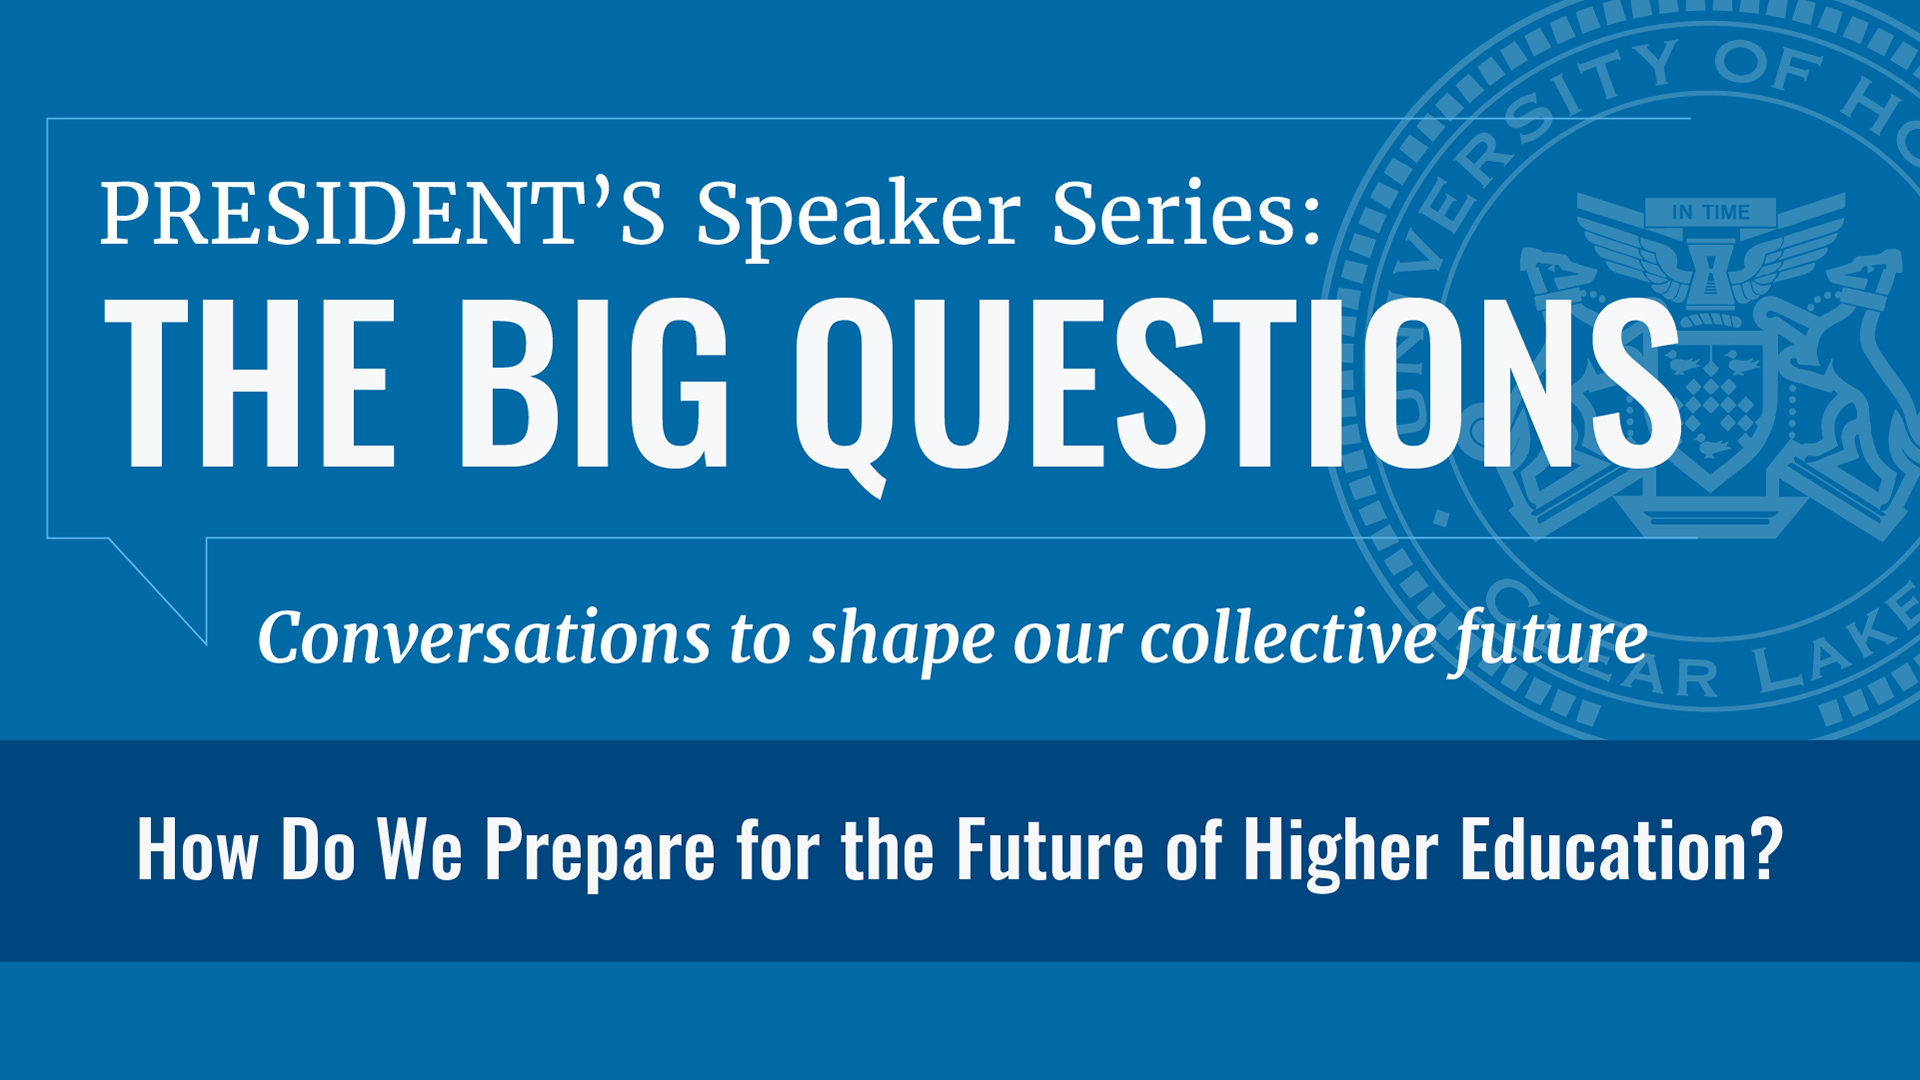 President's Speaker Series seeks to engage university, community about 'big questions'